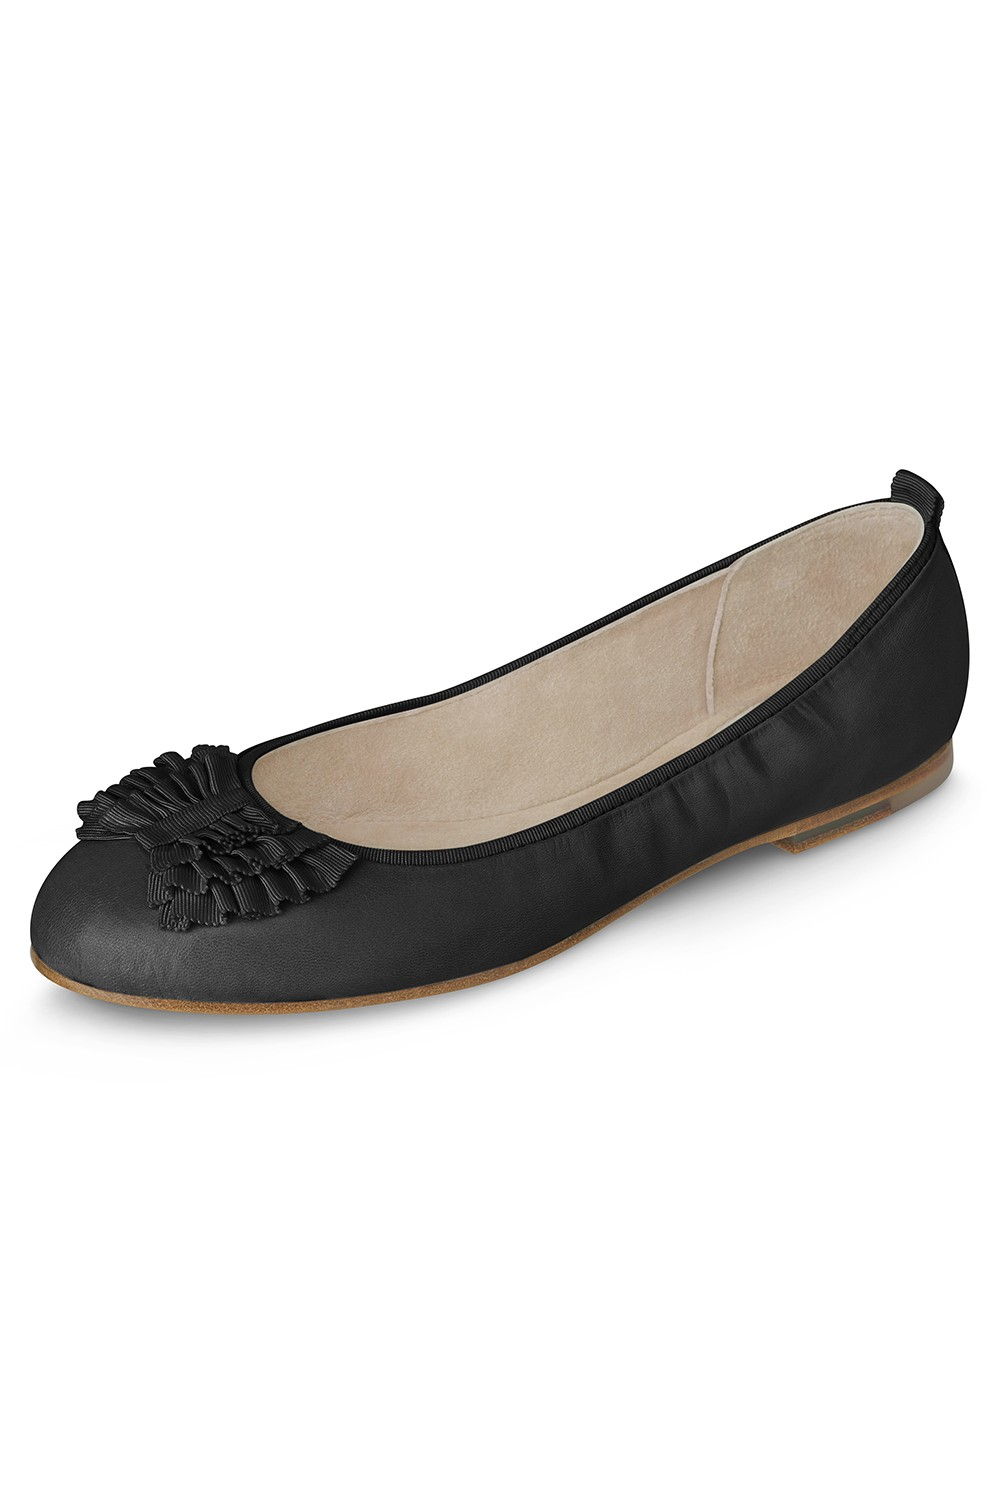 Alize Ladies Ballet Flat Womens Fashion Shoes